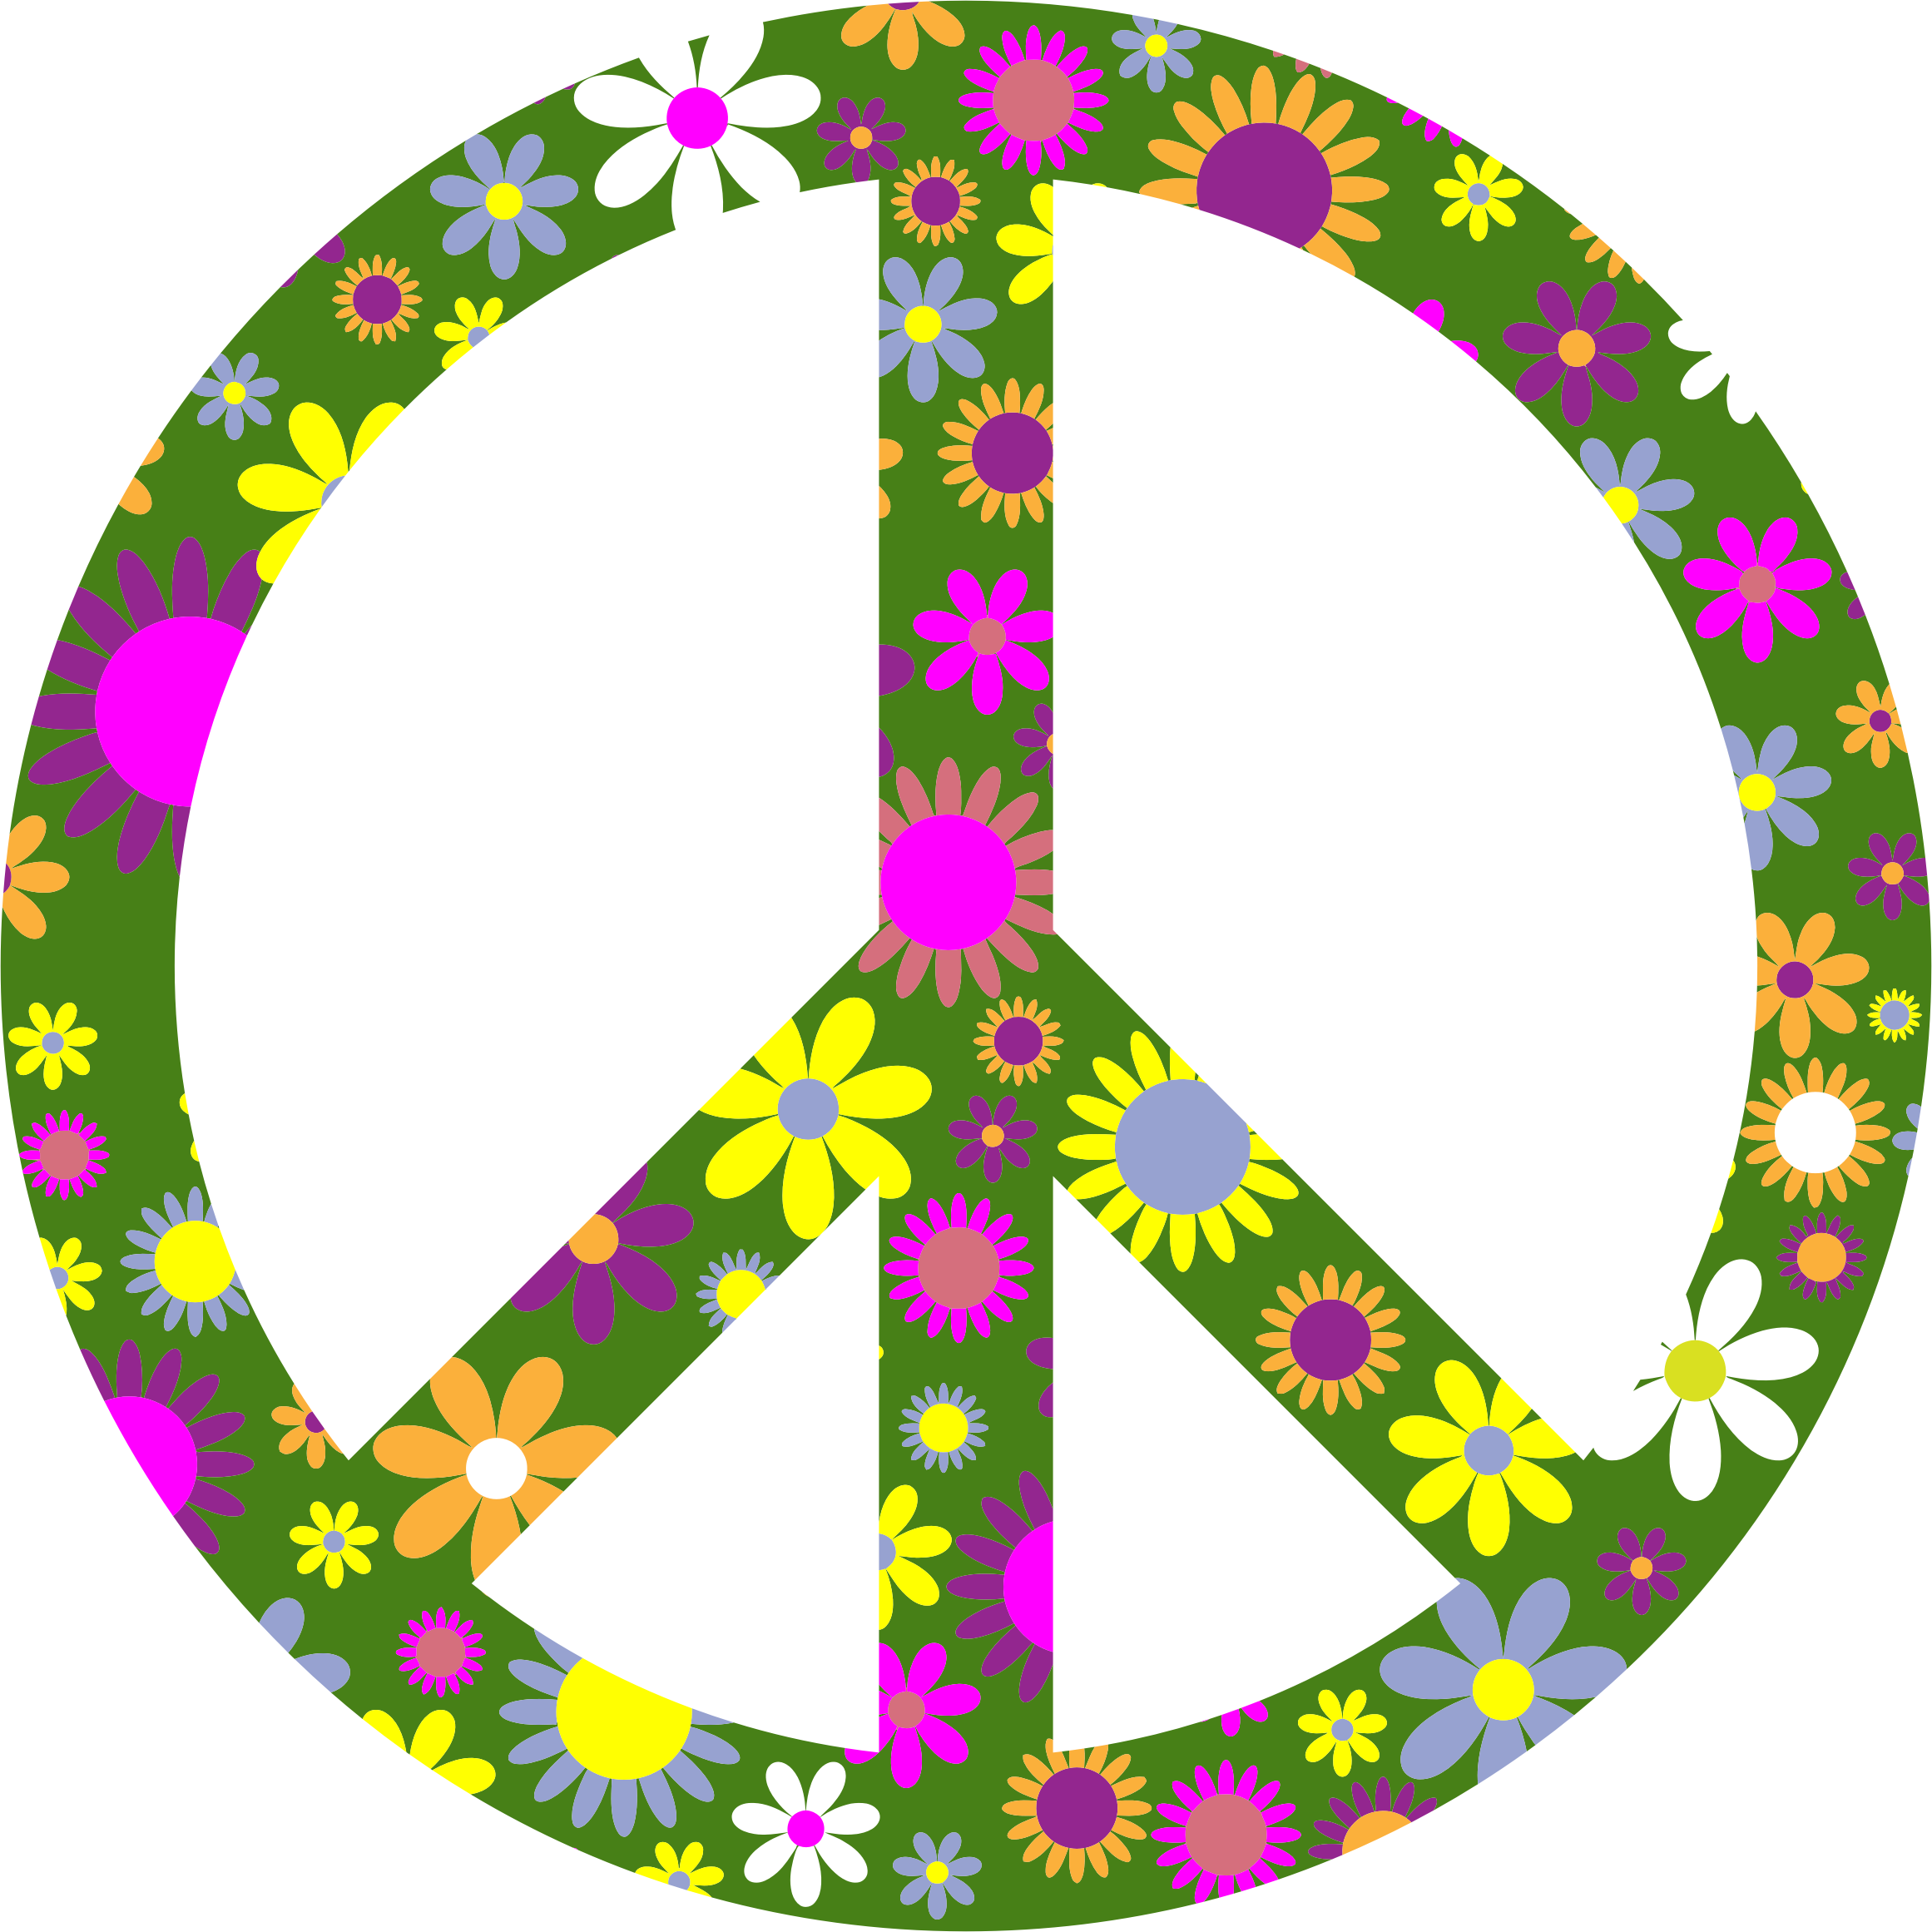 clipart retro floral peace sign rh openclipart org peace sign clip art hand peace sign clip art free